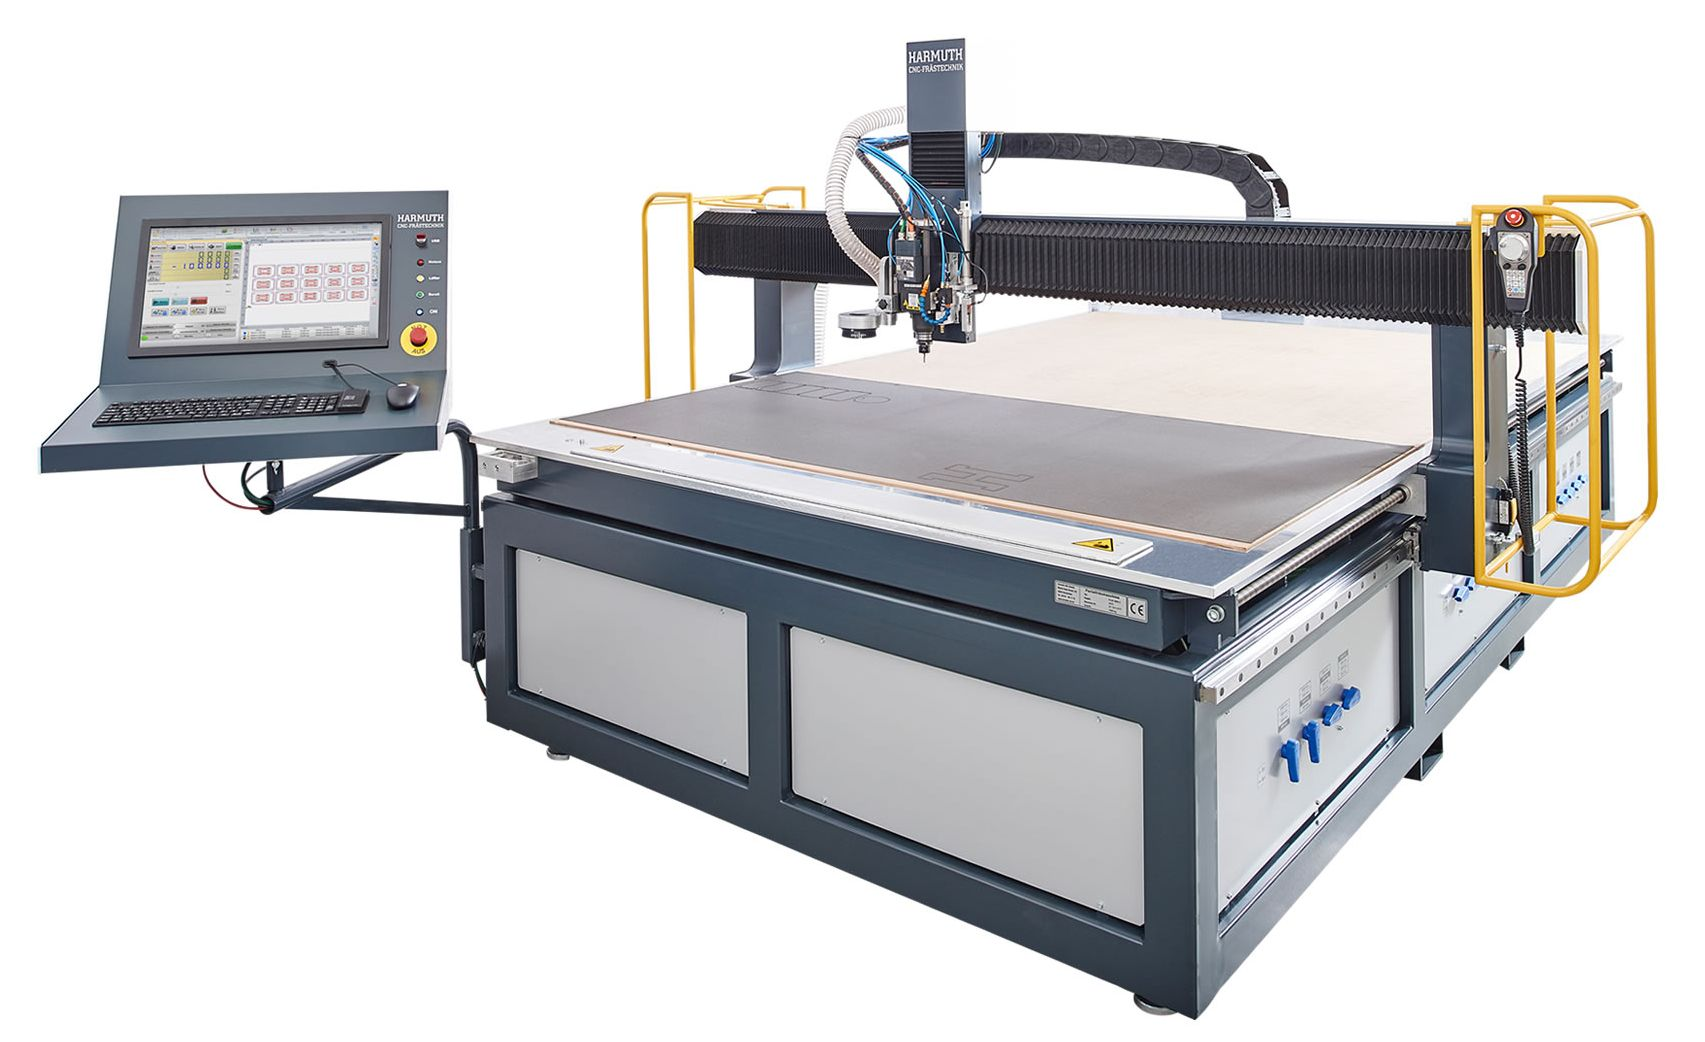 Harmuth-CNC-Profi-Serie-Software